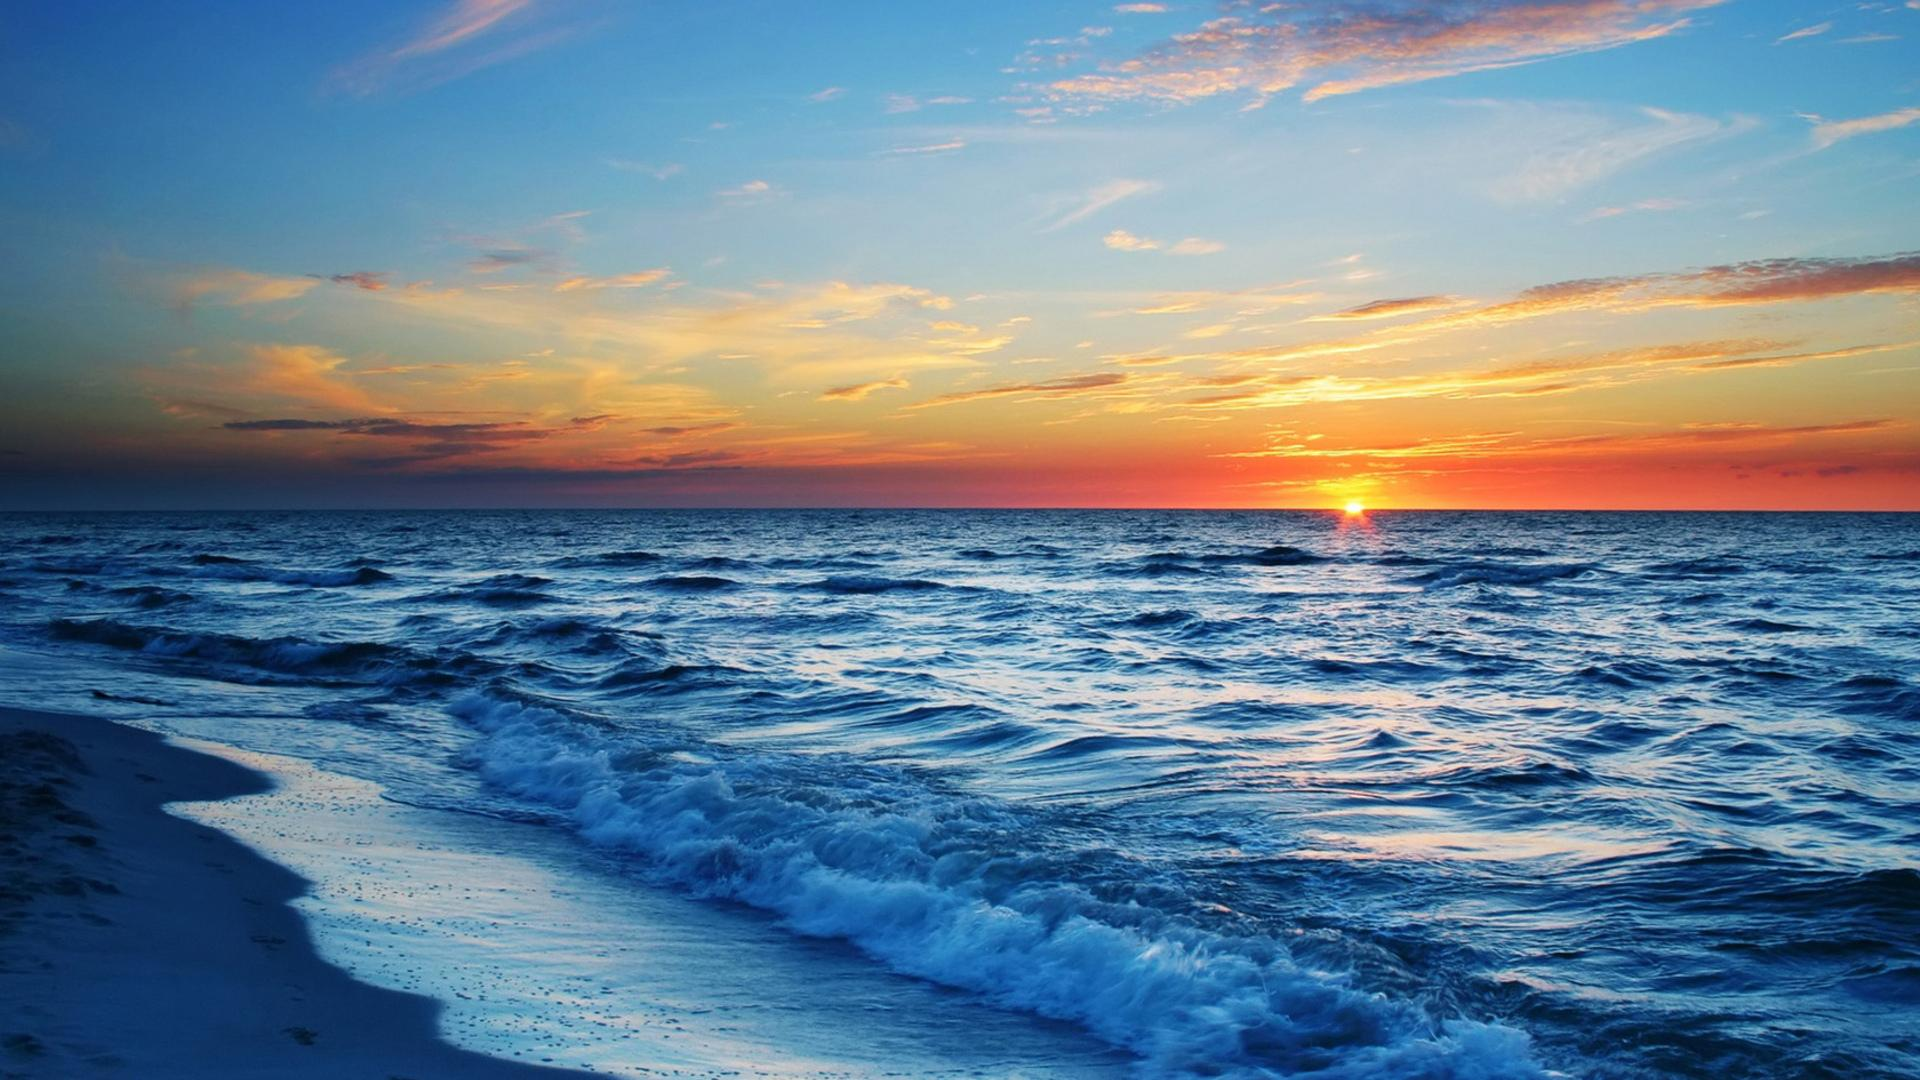 HD Ocean Sunset Wallpapers and Photos HD Beach Wallpapers 1920x1080